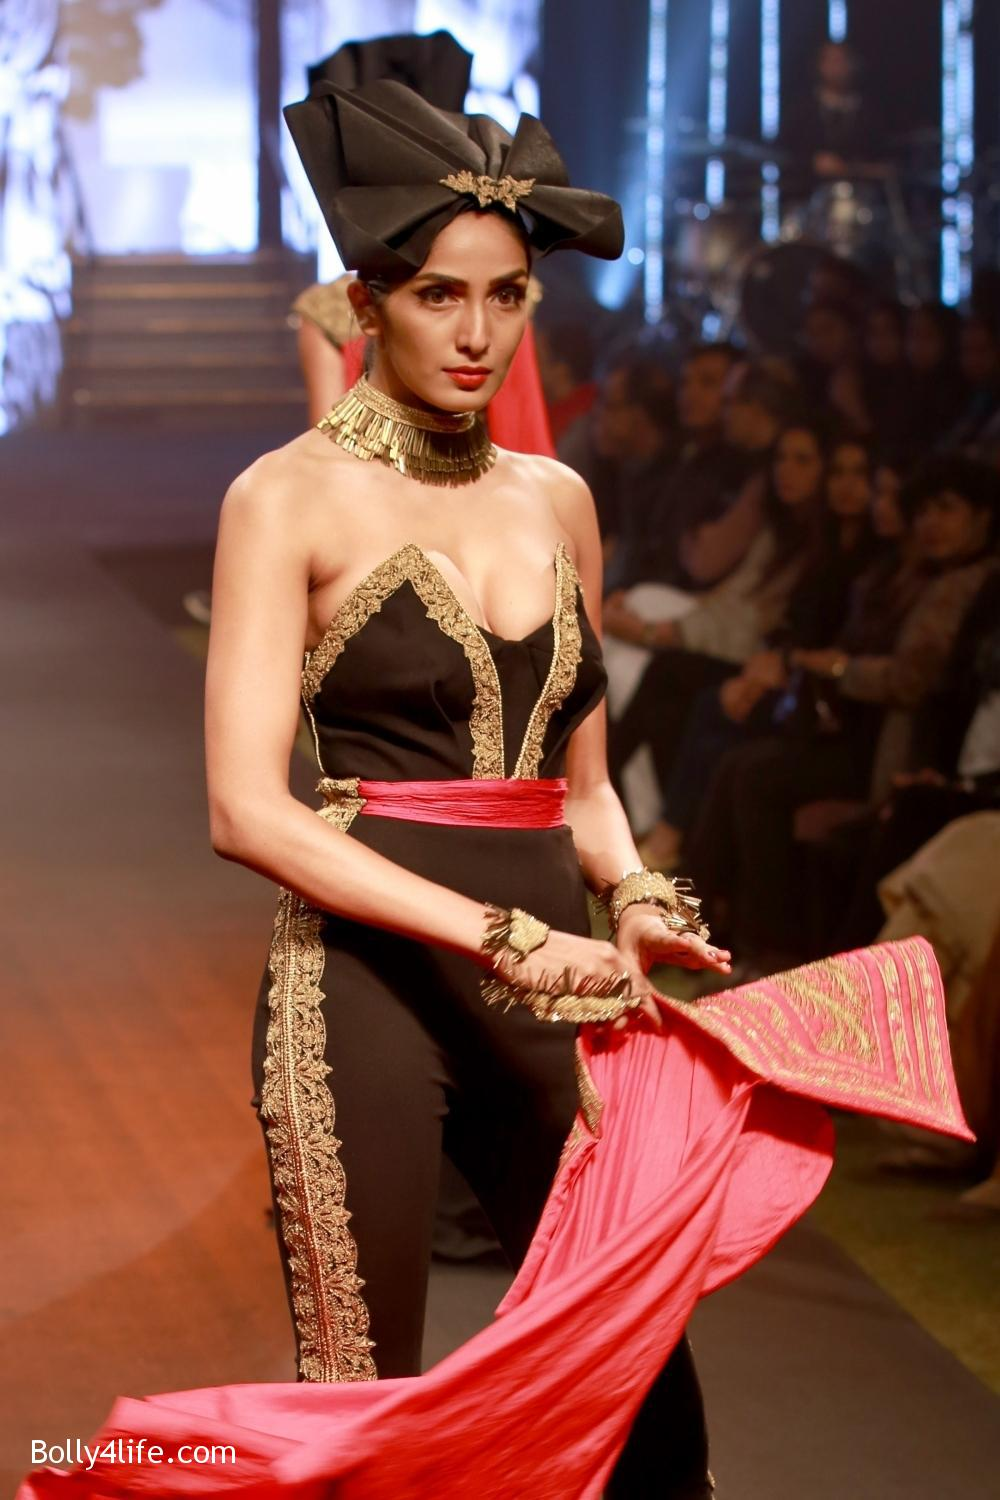 Sonam-Kapoor-walks-on-ramp-for-designers-Shantanu-and-Nikhils-show-during-the-Blenders-Pride-Fashion-Tour-2016-10.jpg